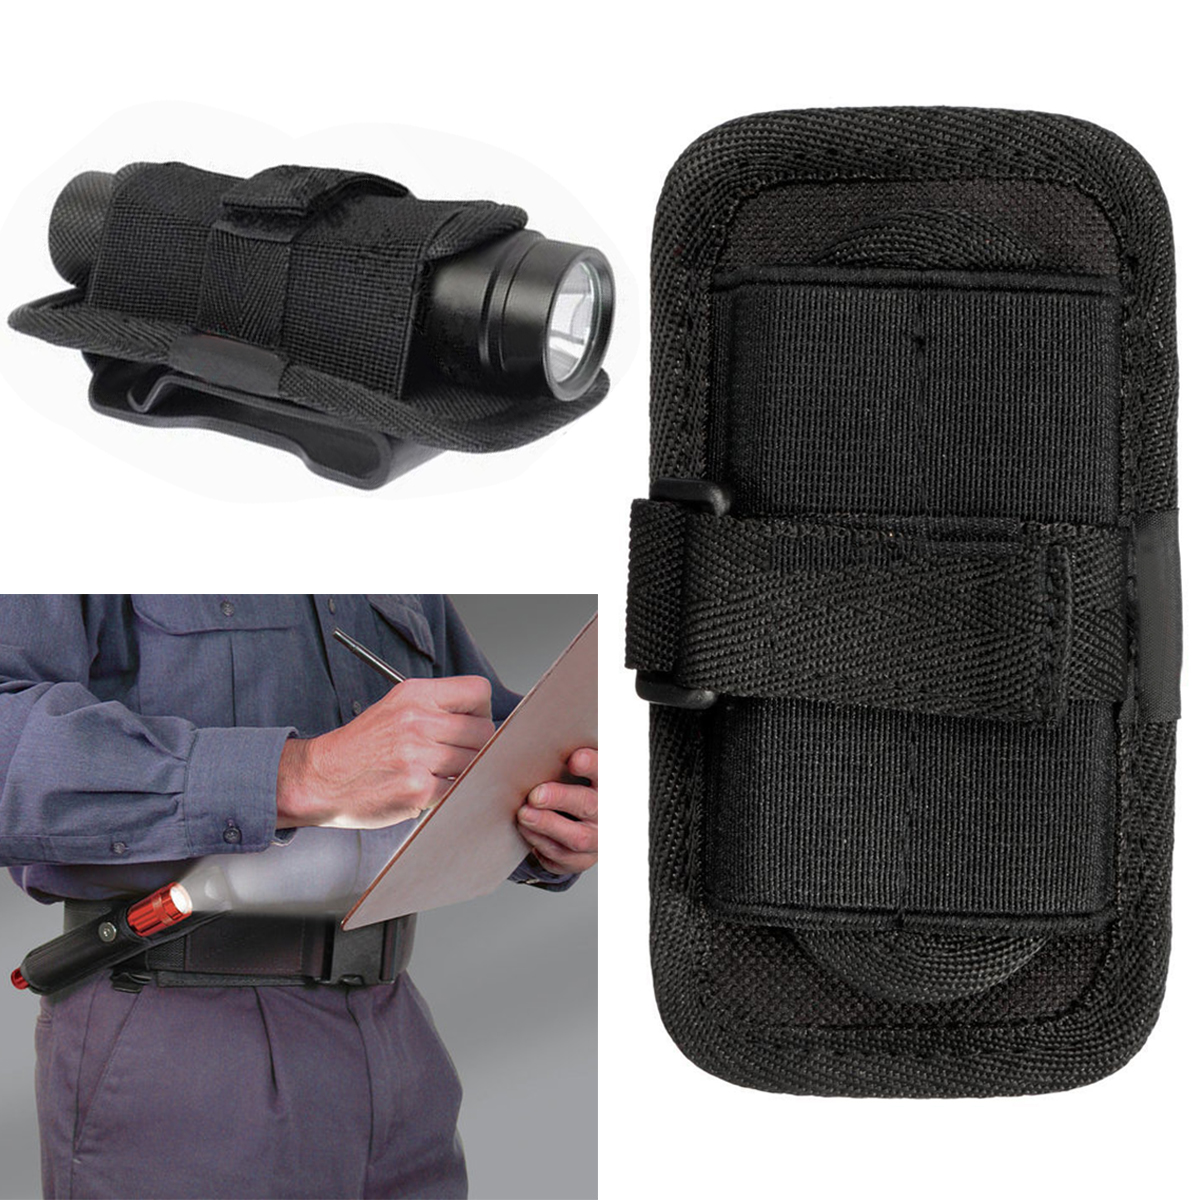 120mm Led Flashlight Torch Nylon 360 Degree Clip Pouch Hunting Torch Holster Holder Belt Bag Case Pouch For Camping Black Reasonable Price